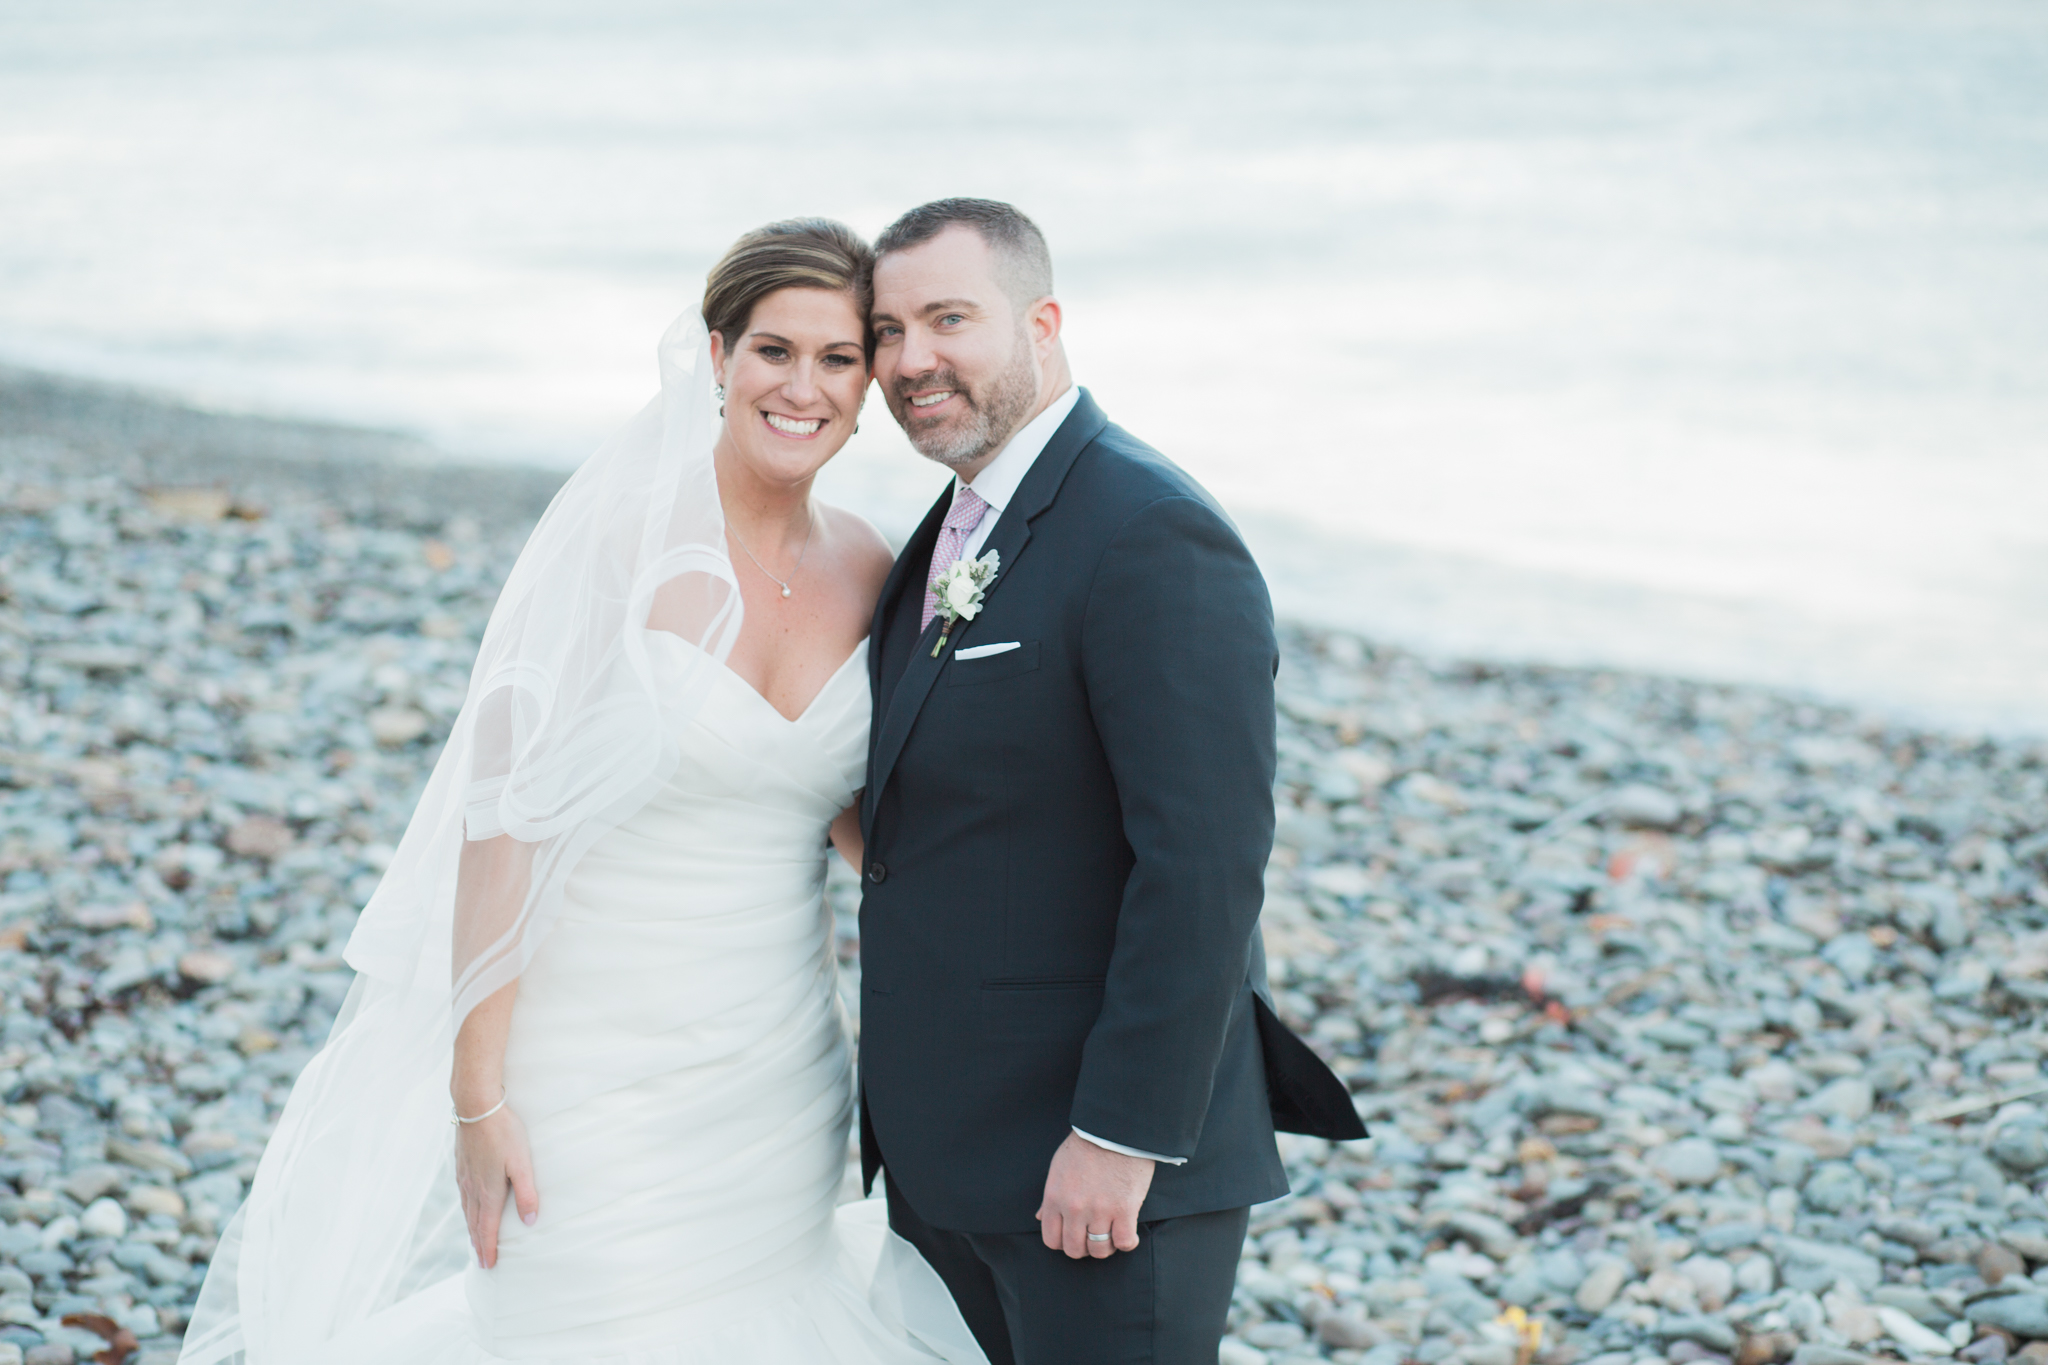 Click over to see more from this rocky beach, fall wedding.